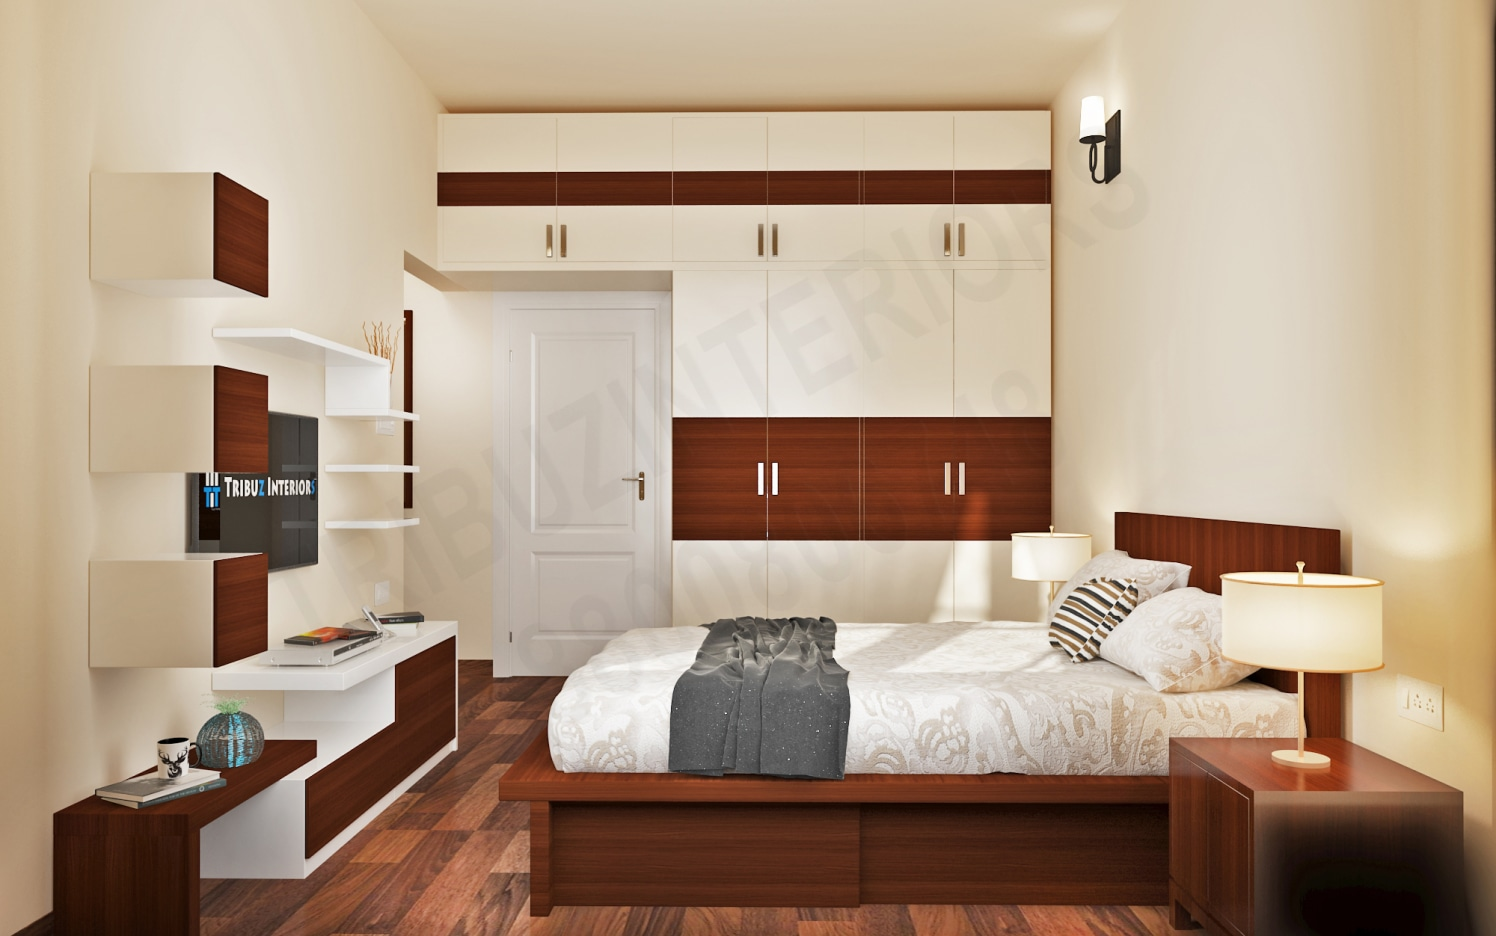 Coffee and Cream Combo Bedroom With Wardrobe And TV  Unit by Tribuz Interiors Pvt. Ltd. Bedroom Modern | Interior Design Photos & Ideas